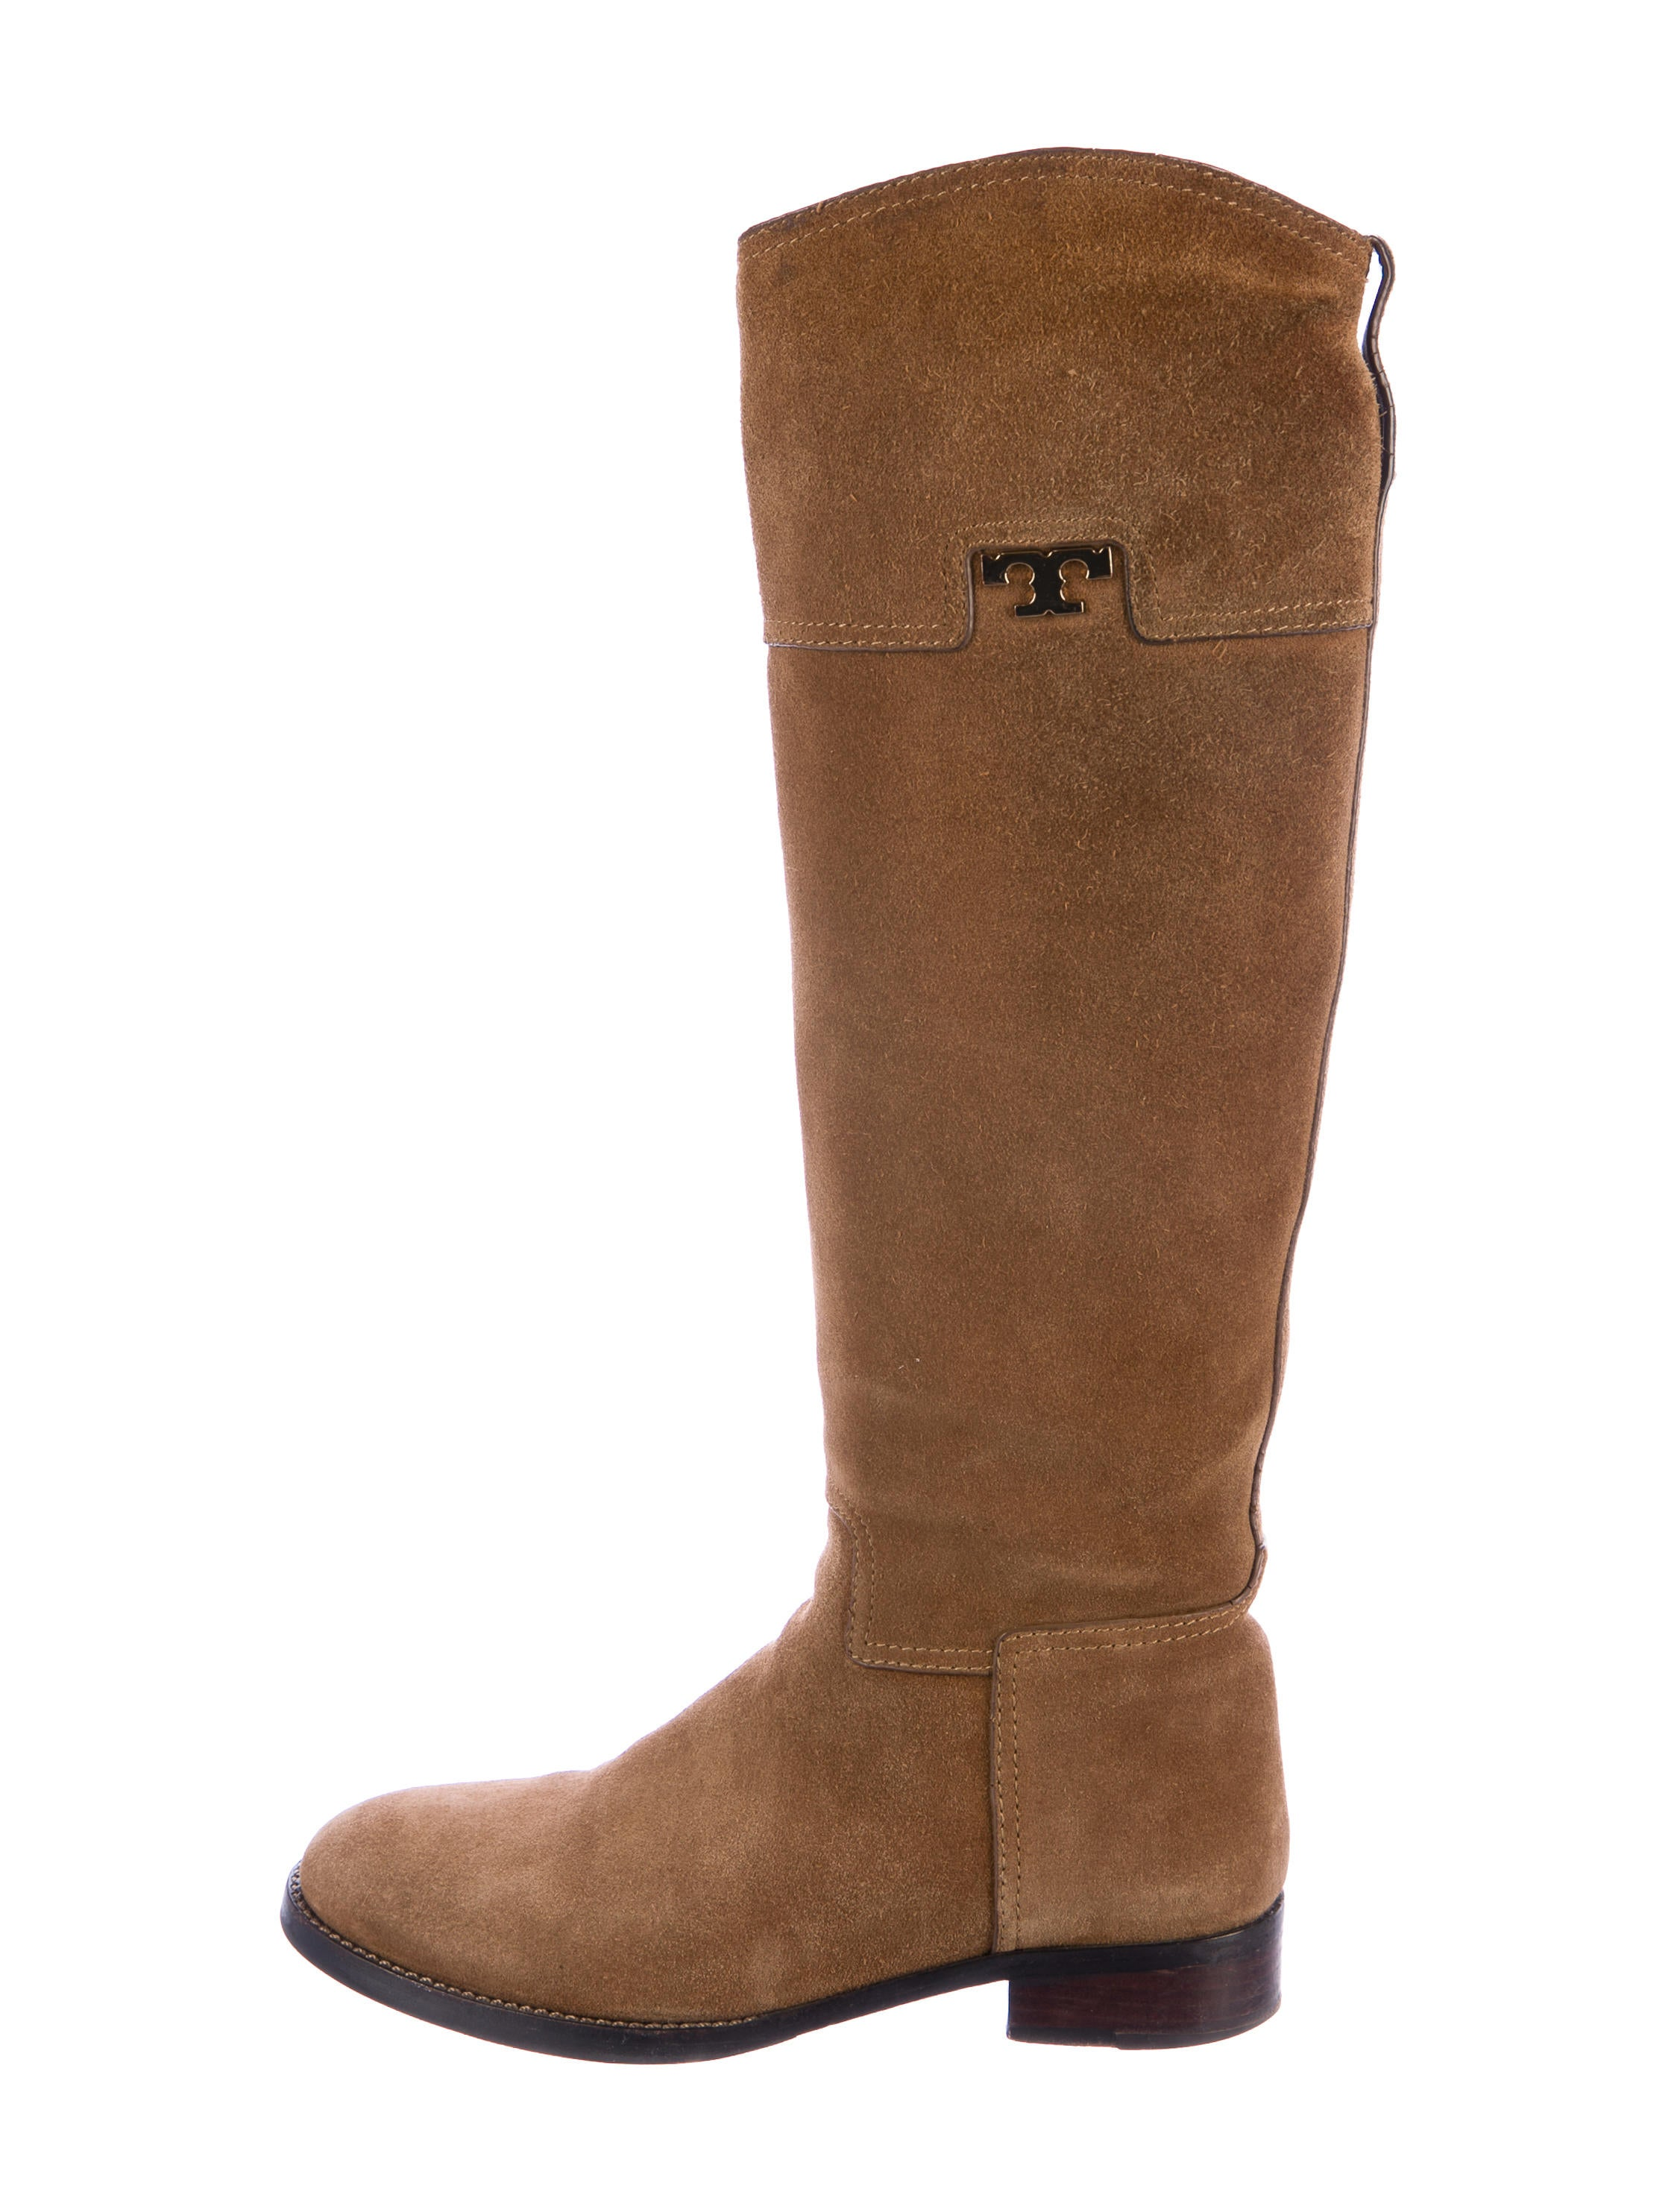 burch suede toe knee high boots shoes